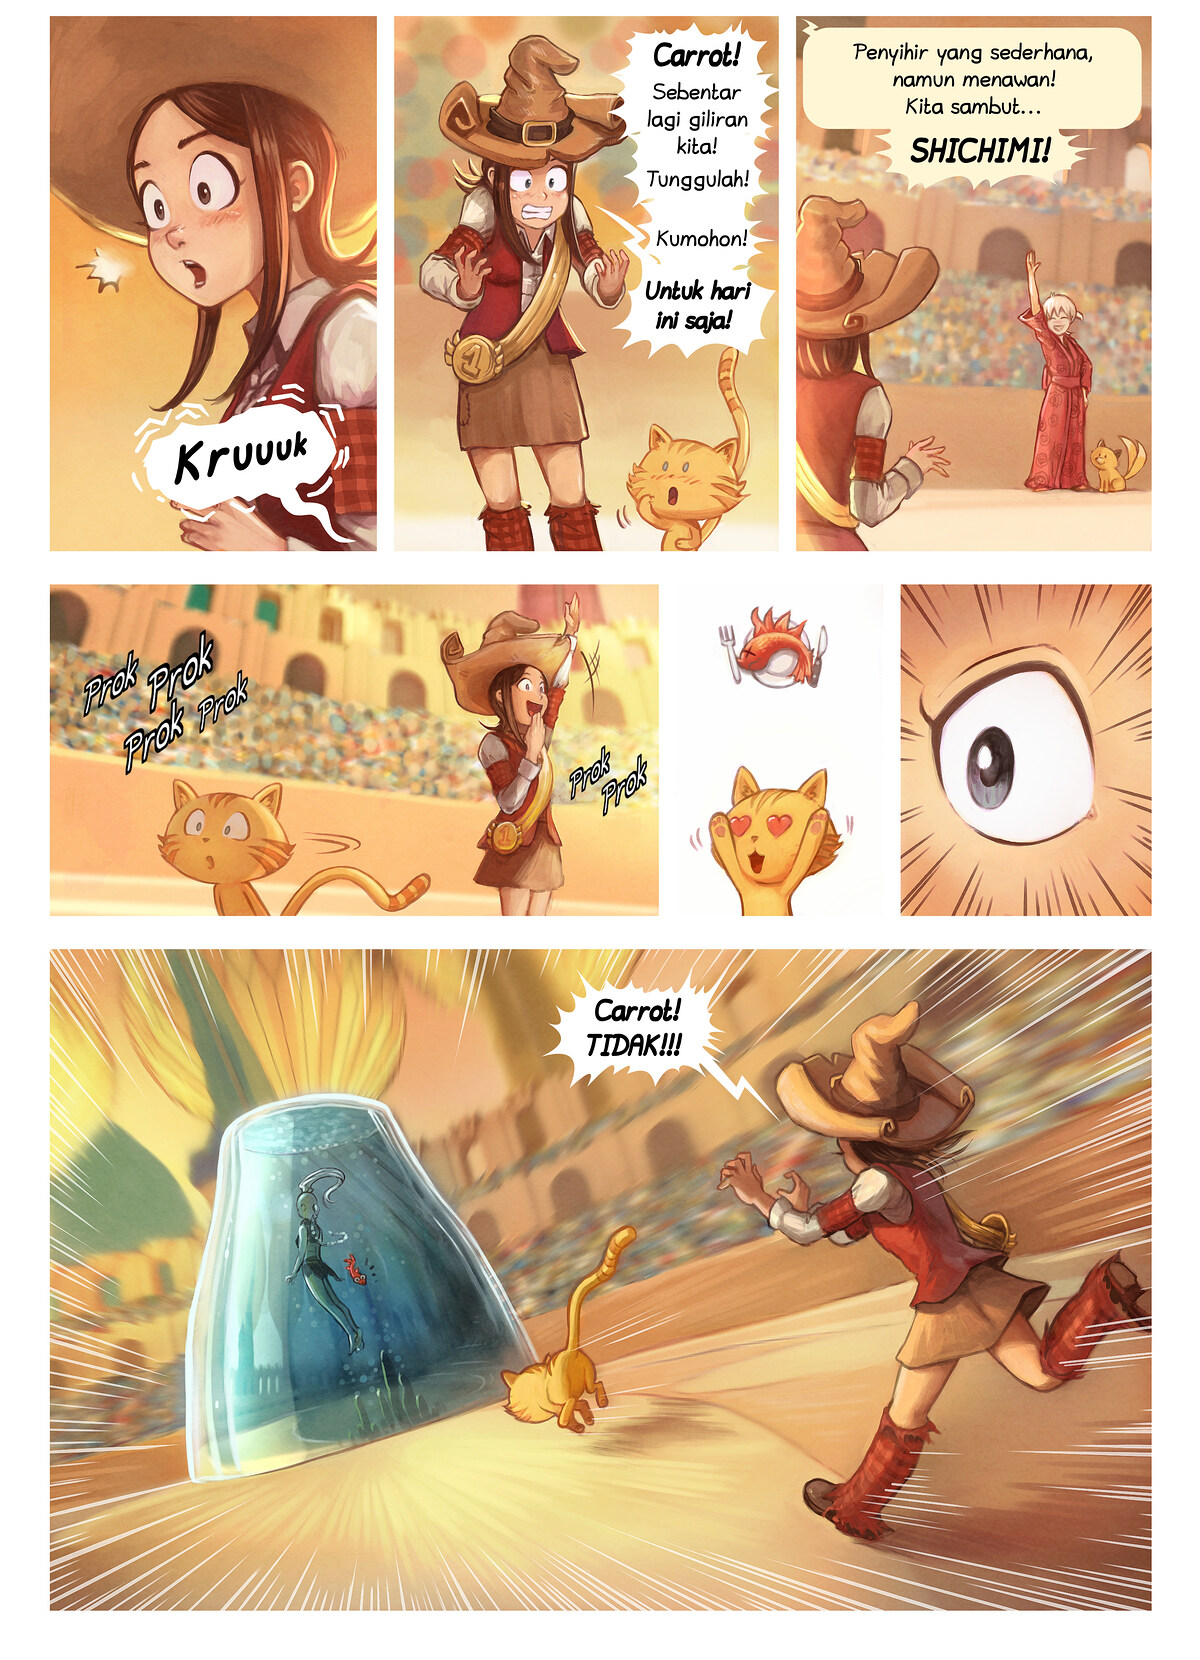 A webcomic page of Pepper&Carrot, episode 21 [id], halaman 5